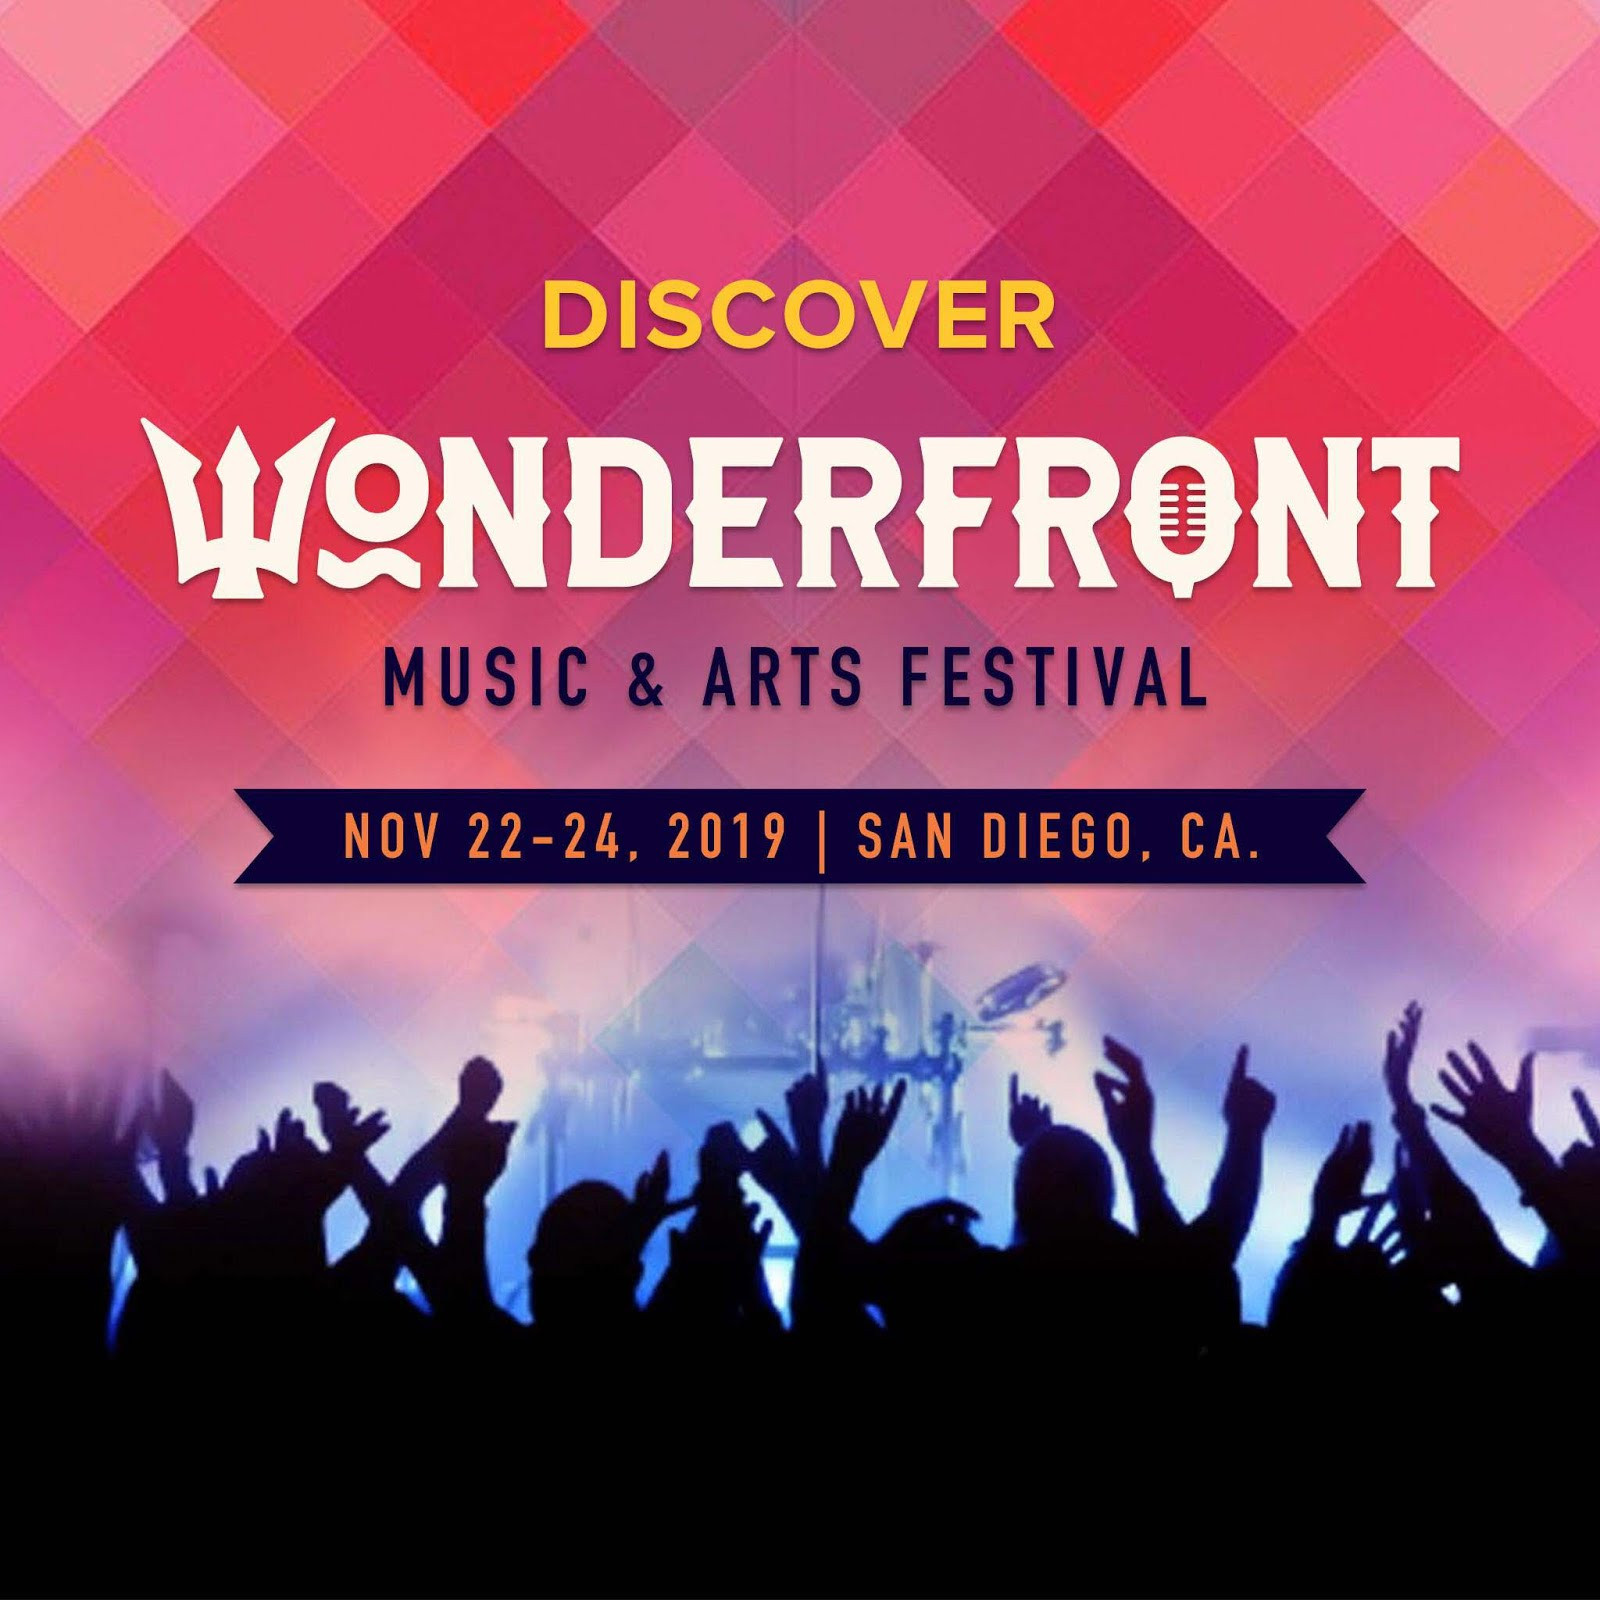 Enter to win 2 weekend passes to the Wonderfront Music & Arts Festival - November 22-24!